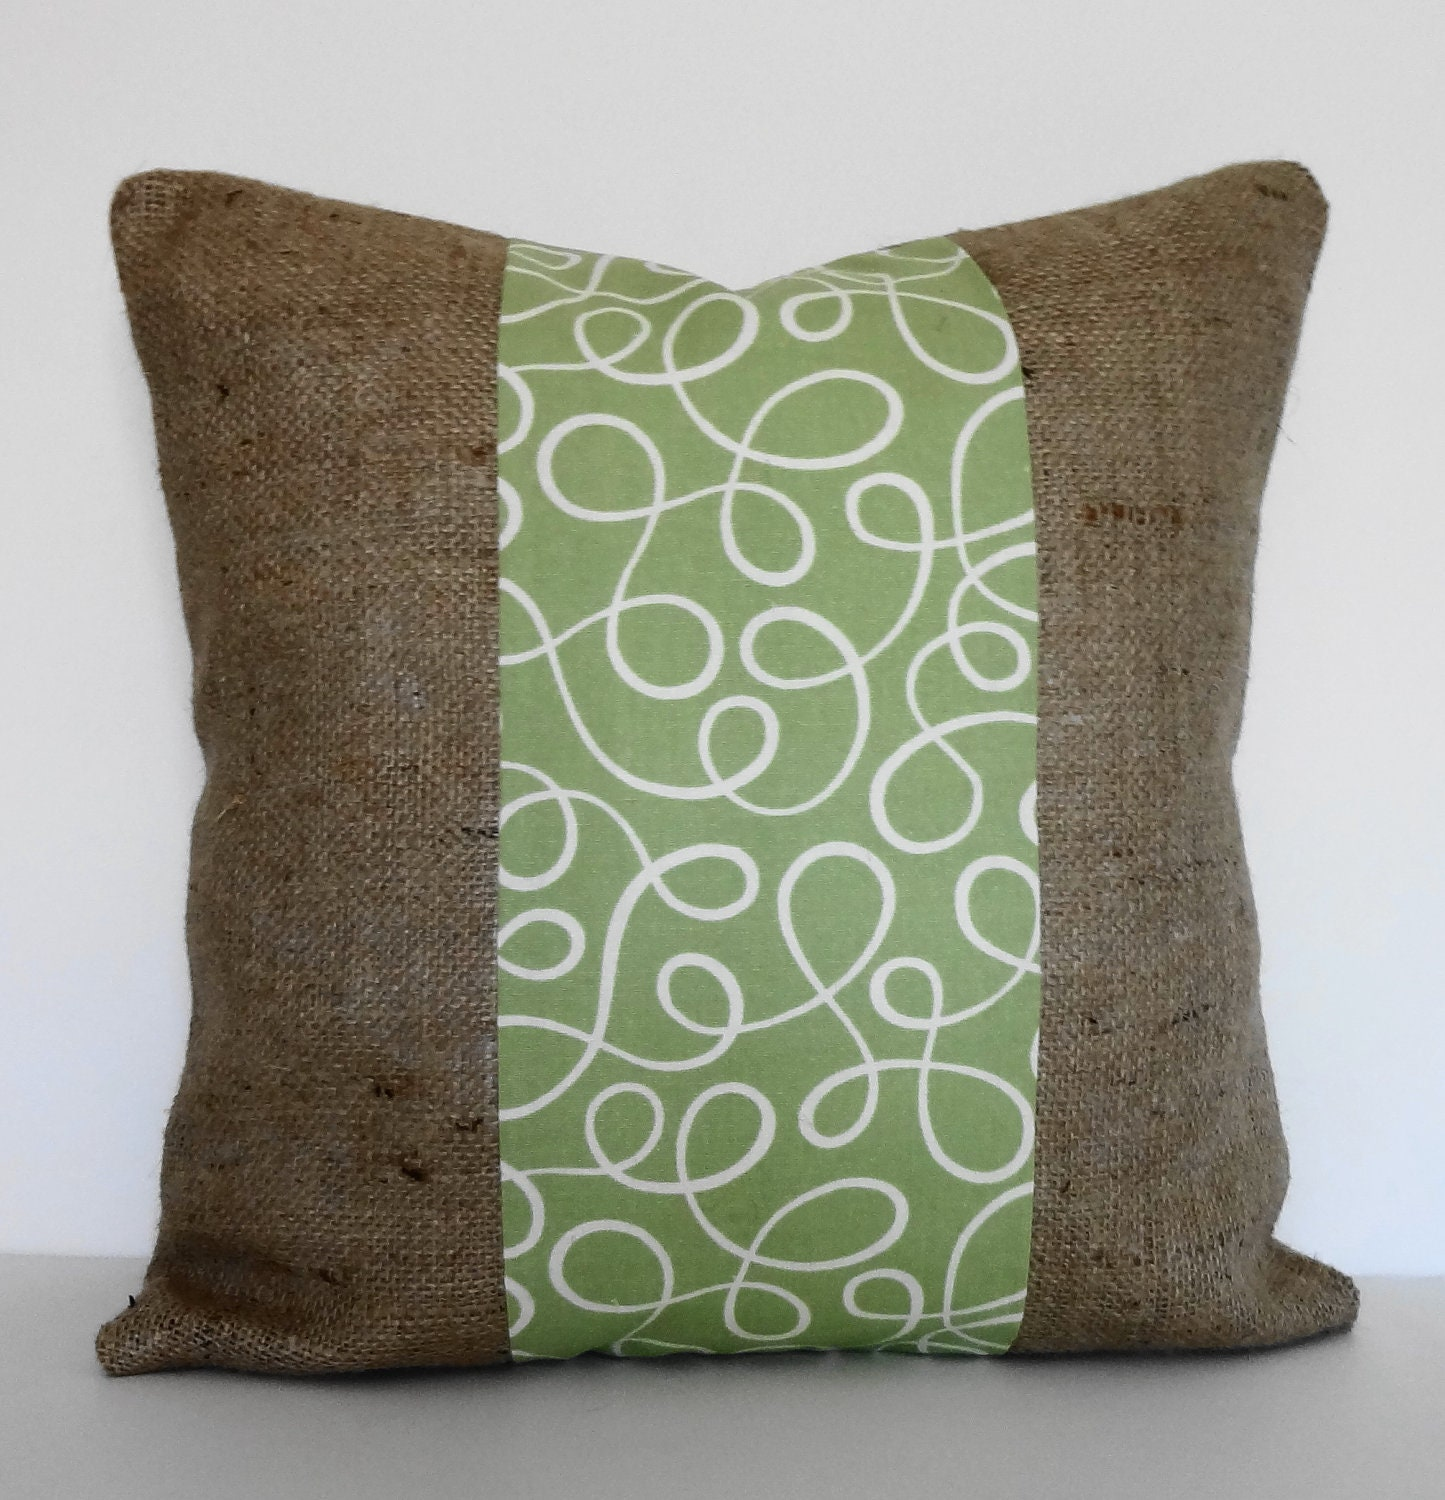 Decorative Burlap Pillow Covers : Burlap Sage Green Decorative Pillow Cover P Kaufmann Throw